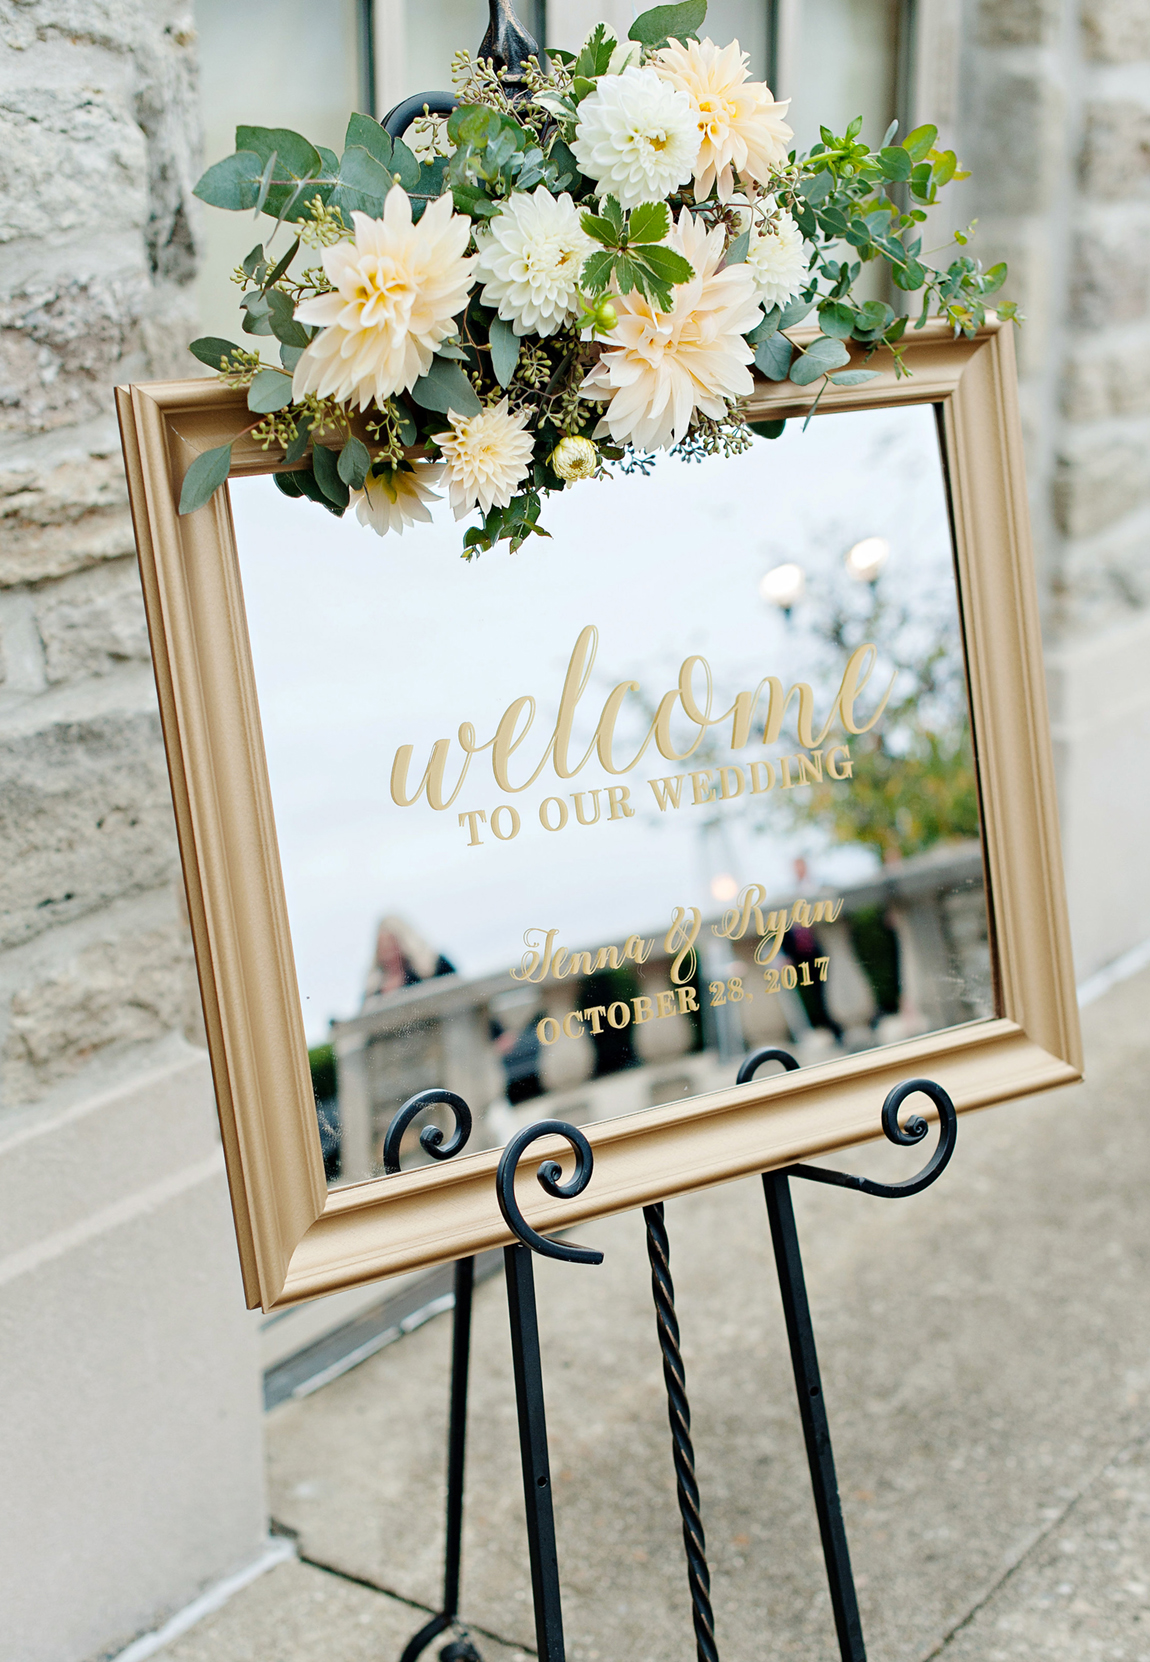 For an Ault Park outdoor wedding, guests are greeted by a mirrored gold framed Welcome sign dressed in fresh flowers with cafe-au-lait ivory and white dahlias